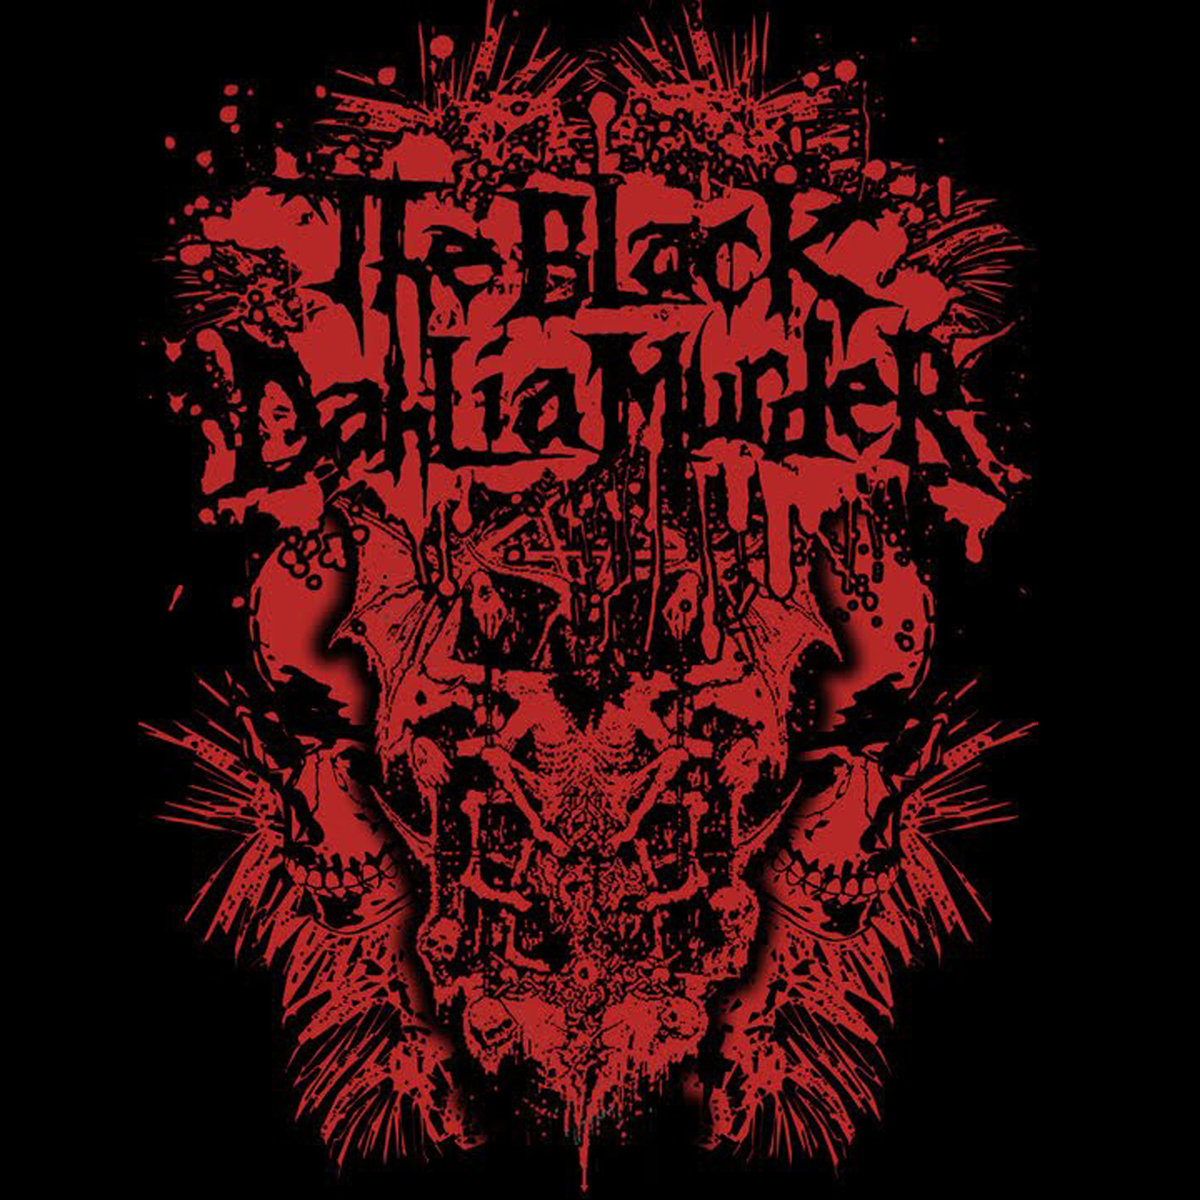 Most Viewed The Black Dahlia Murder Wallpapers 4k Wallpapers